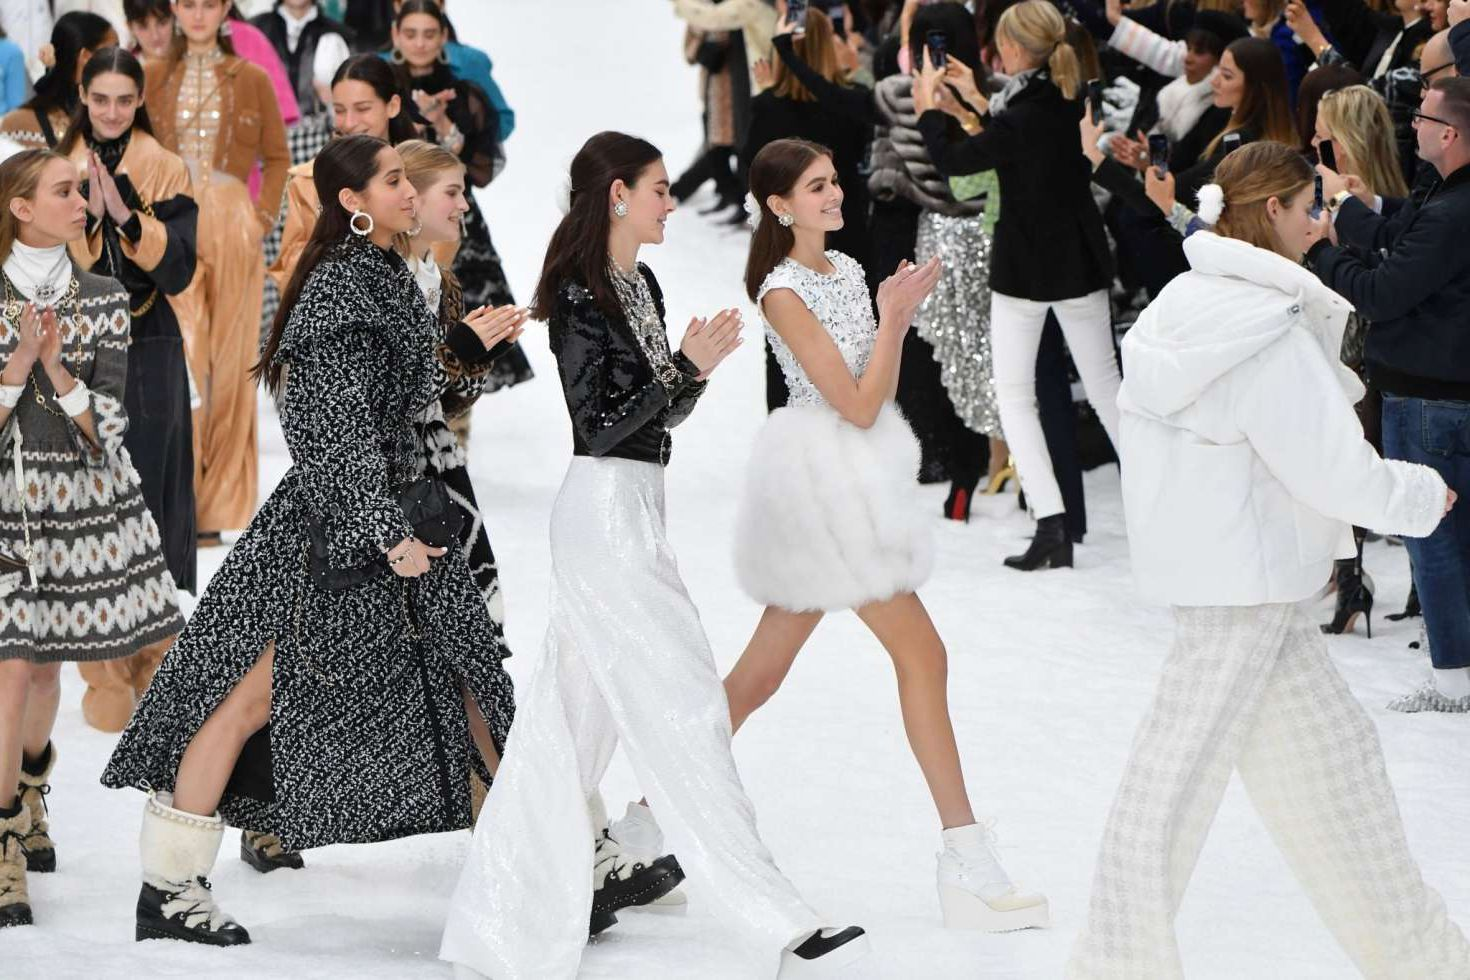 Kaia Gerber with other models at the Chanel Runway Show, 2019